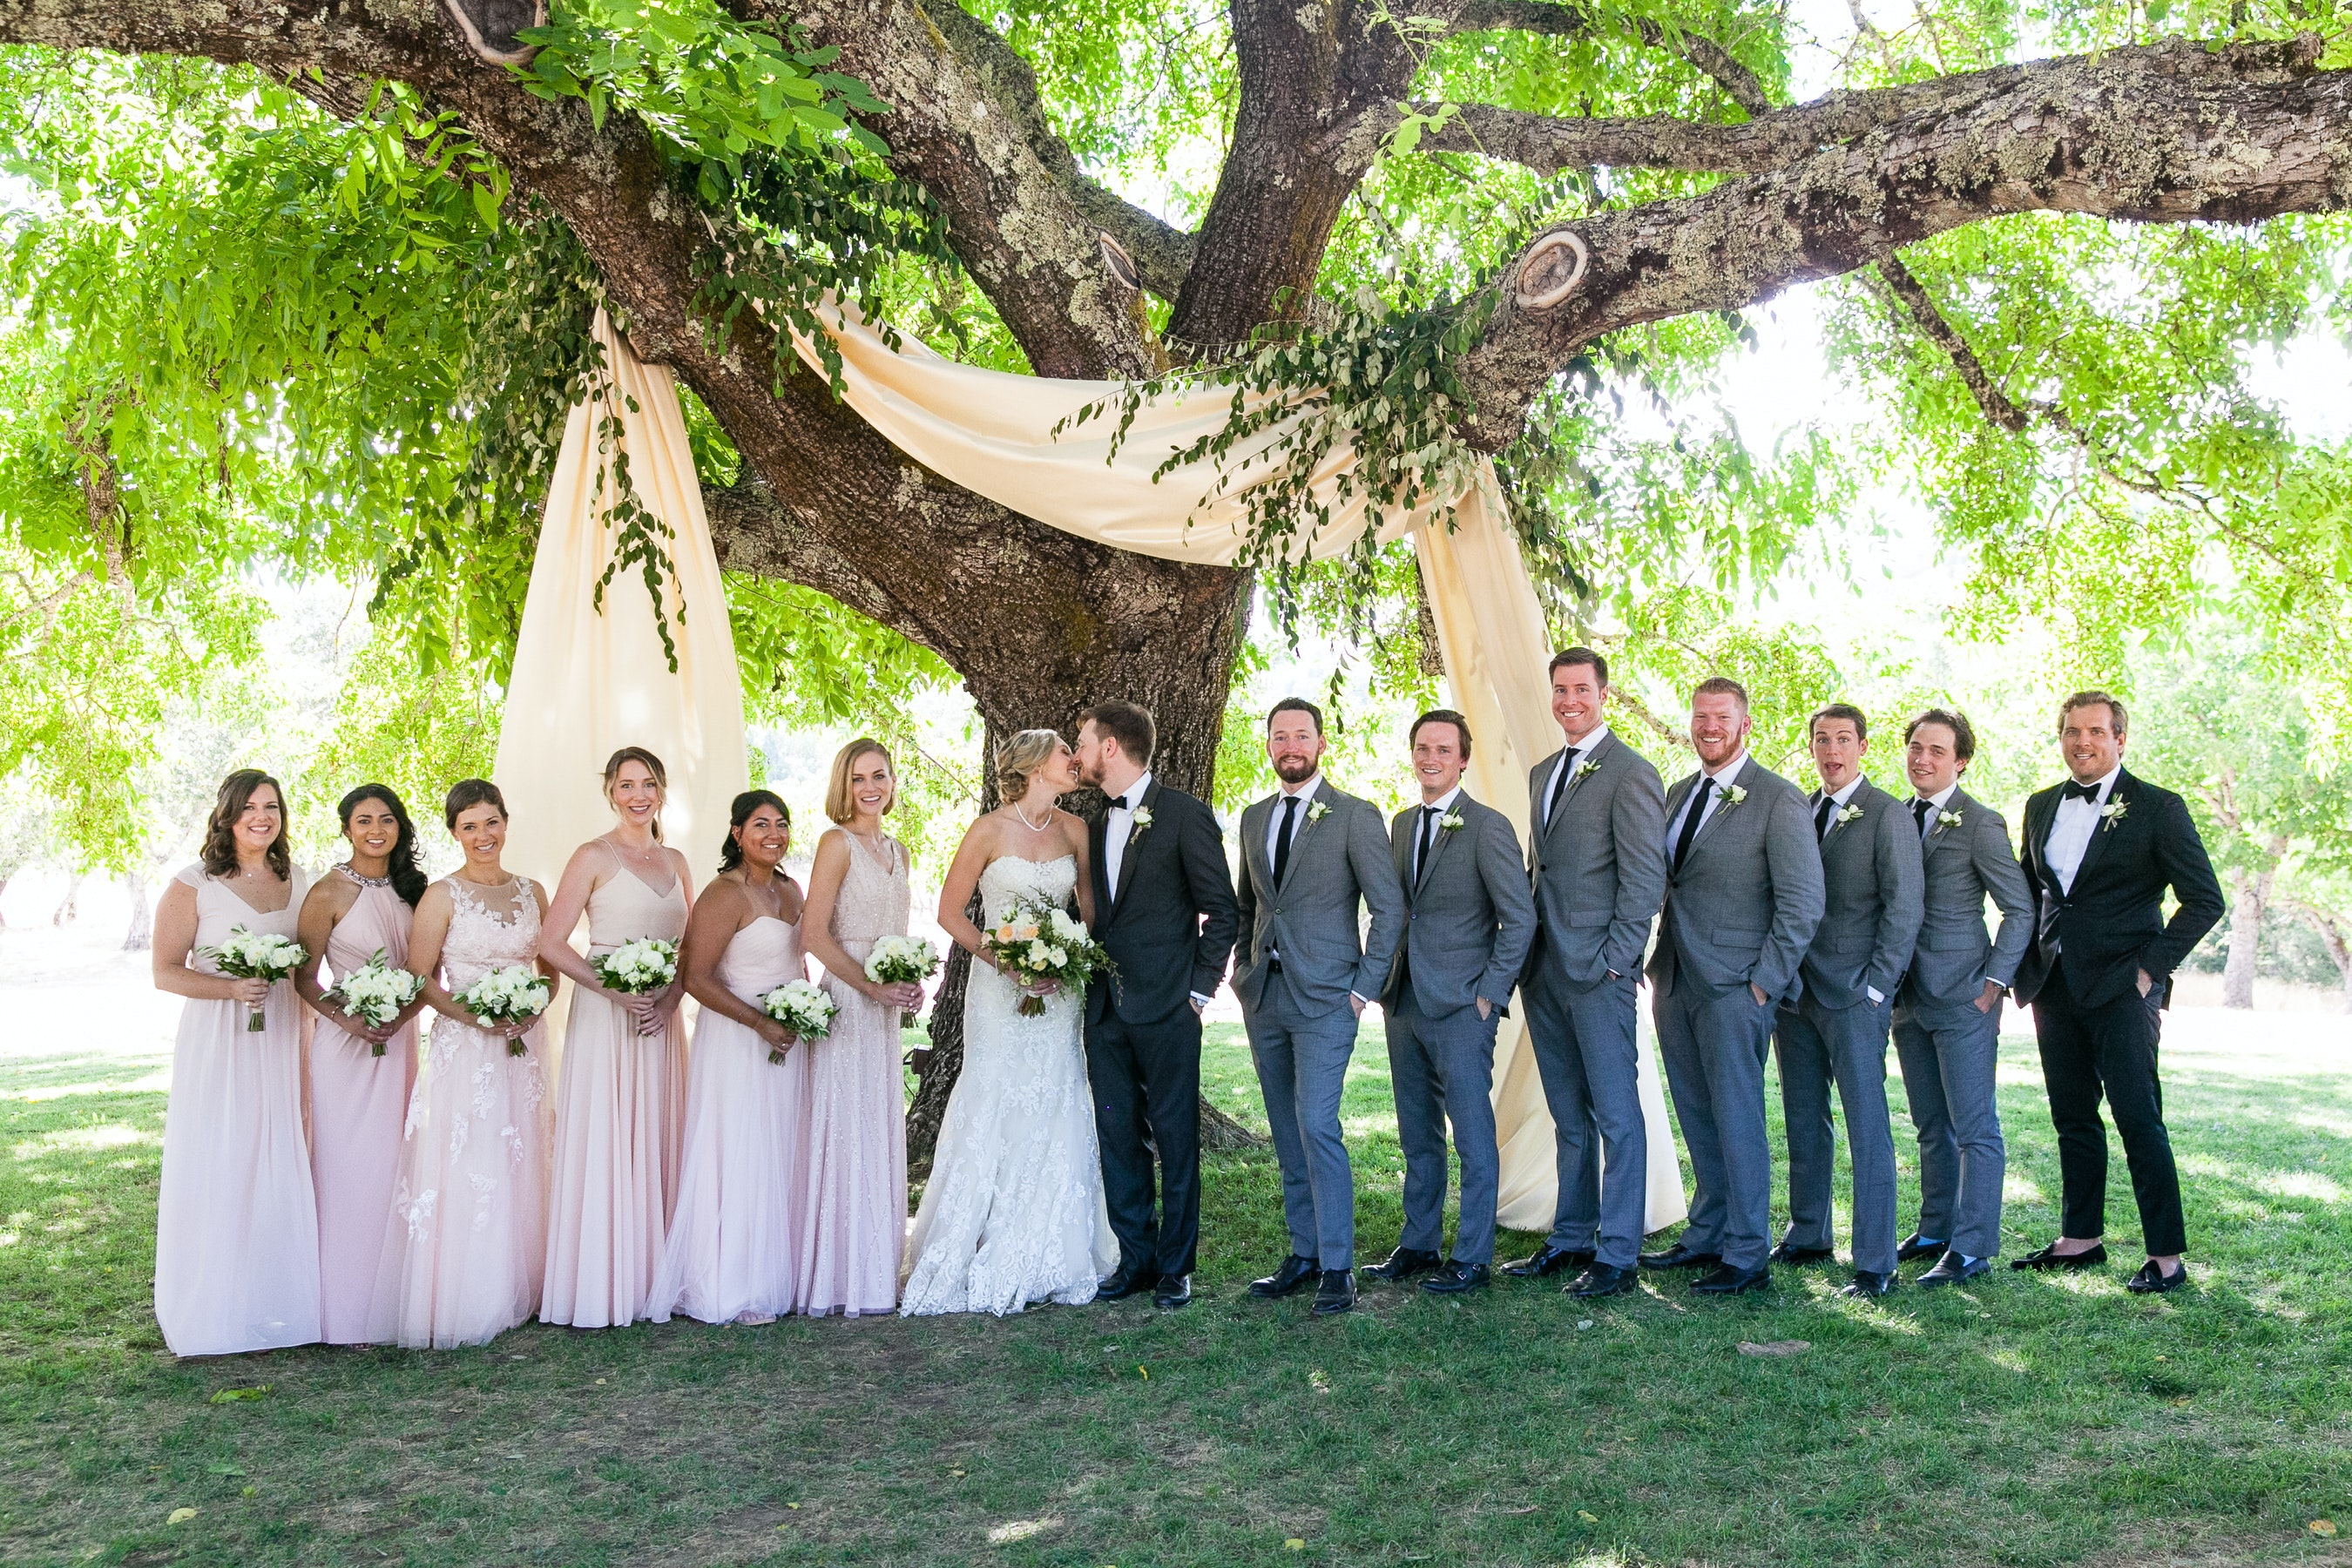 16 Rustic Wedding Ideas to Make Your Country-Chic Dreams Come True -  PartySlate